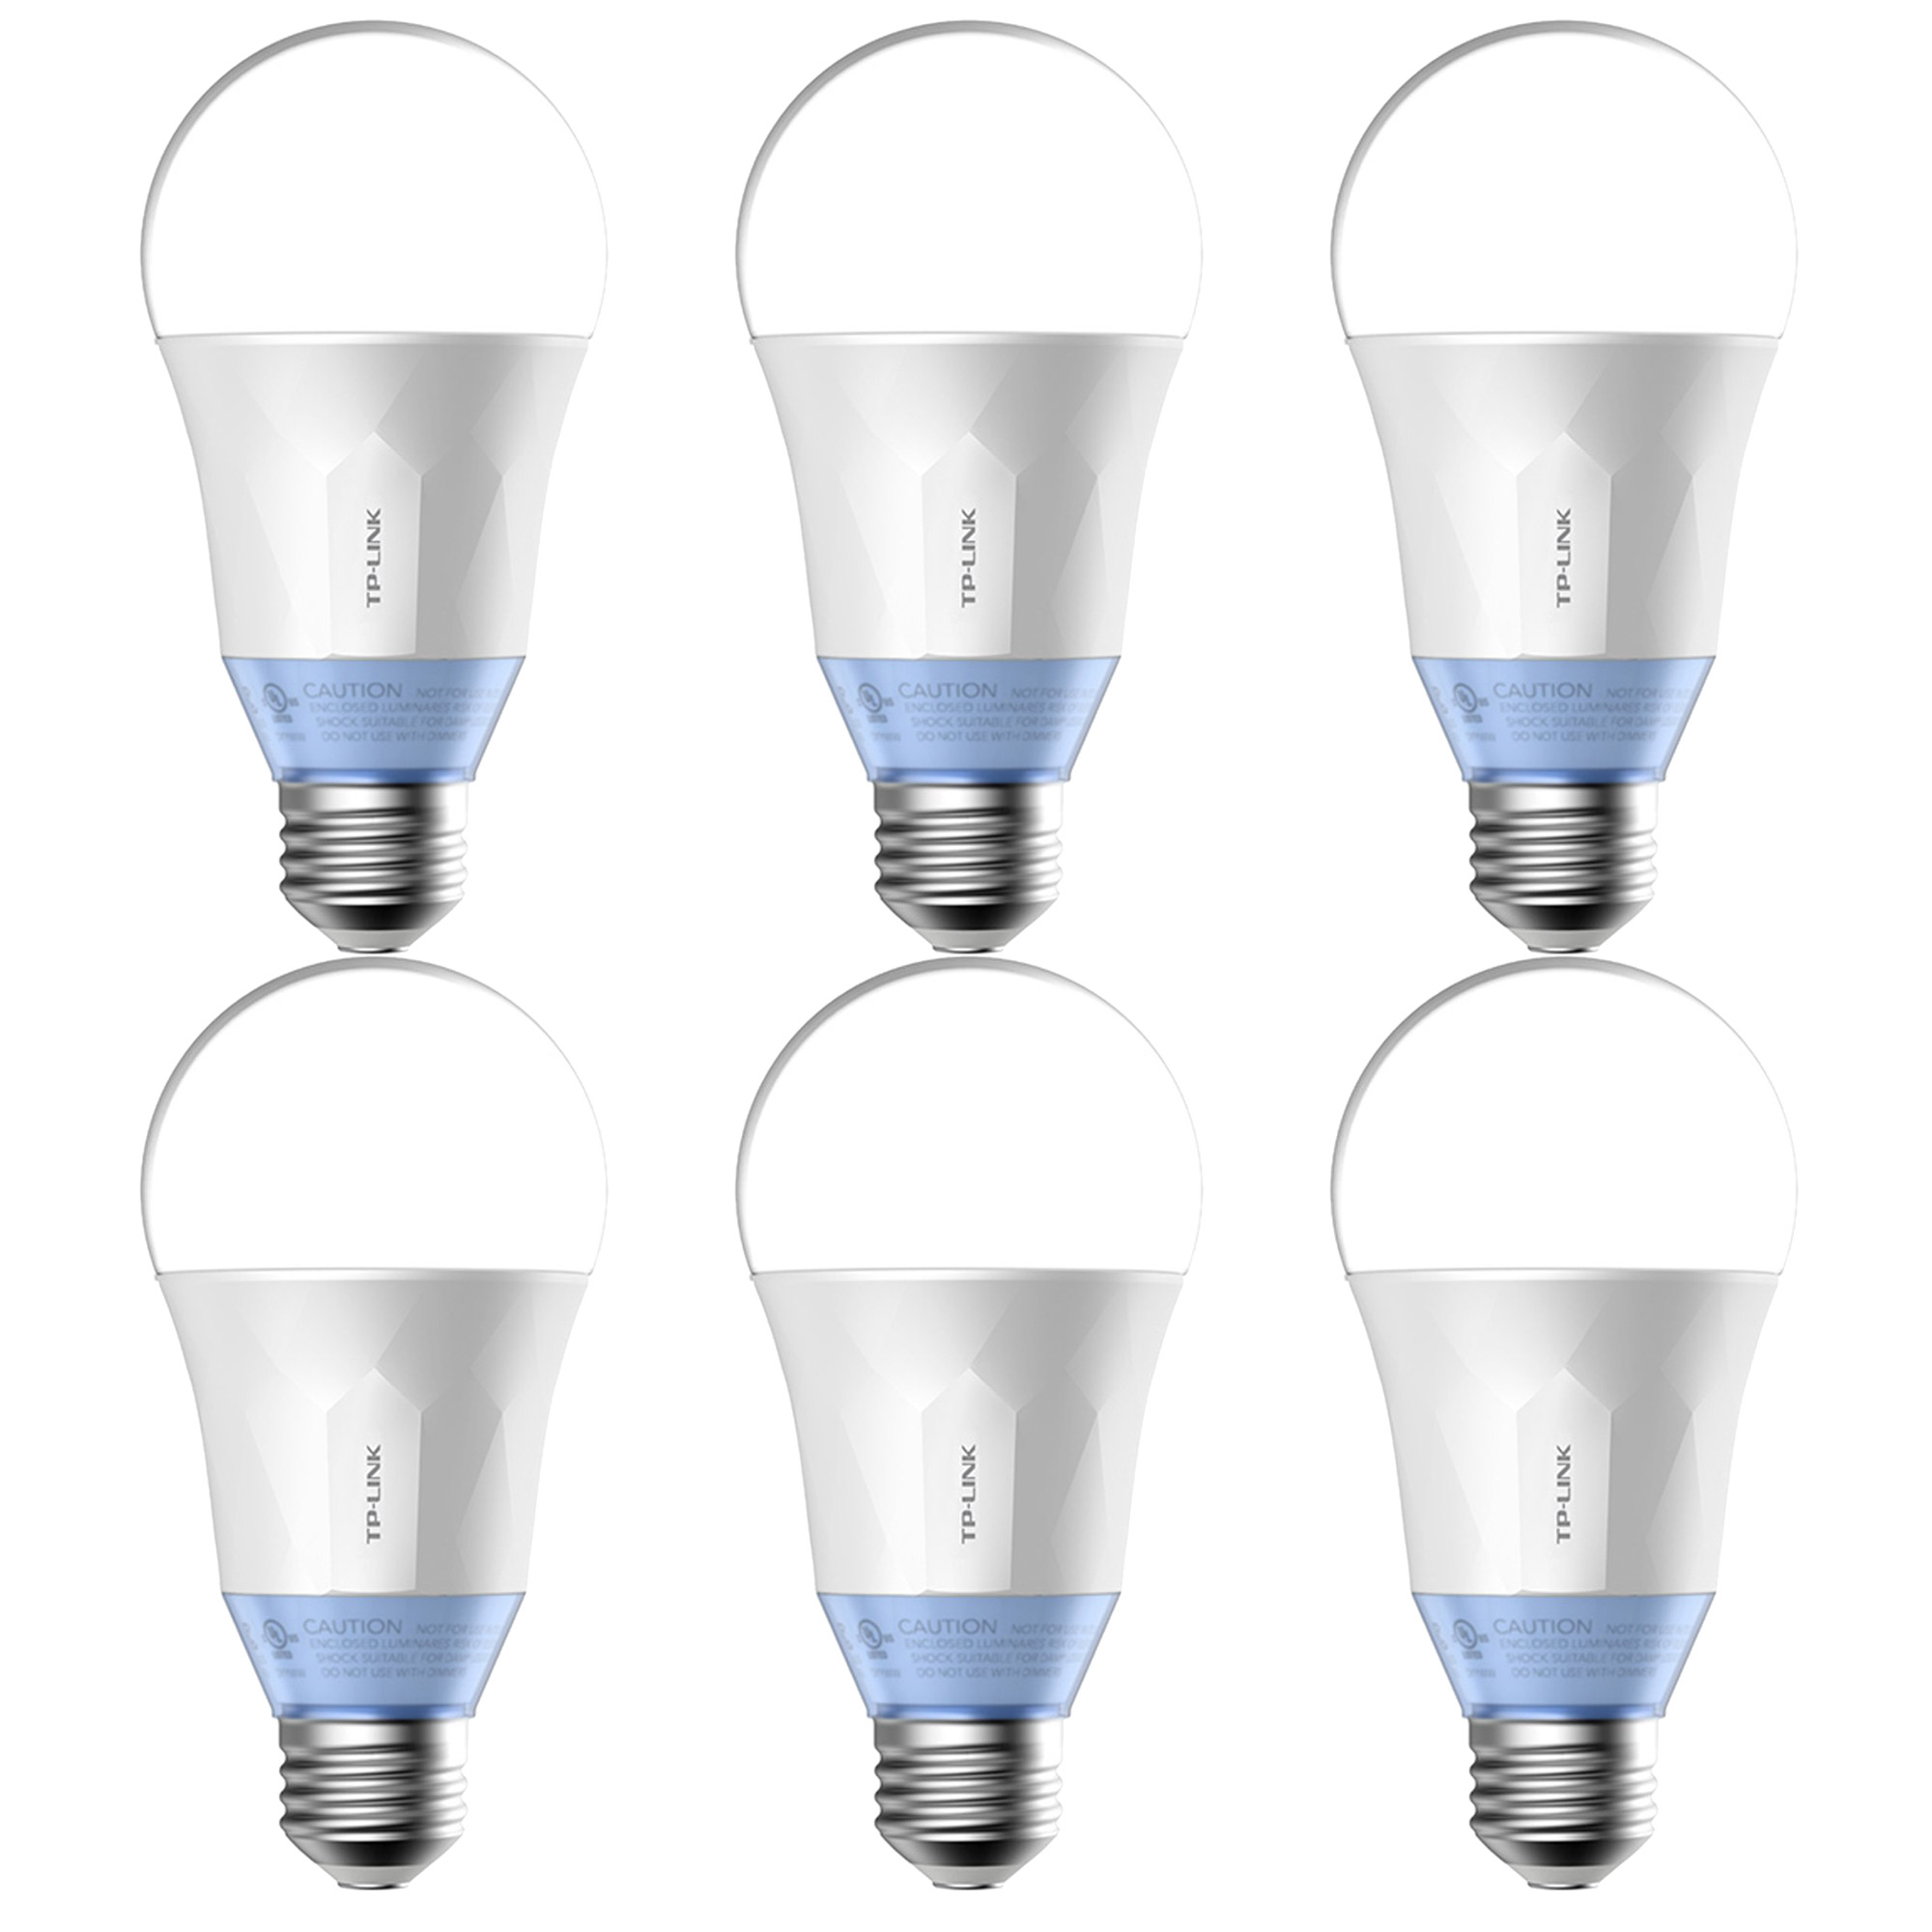 TP-Link Smart WiFi LED 11W Dimmable White Bulb with Voice App Control (6 Pack)